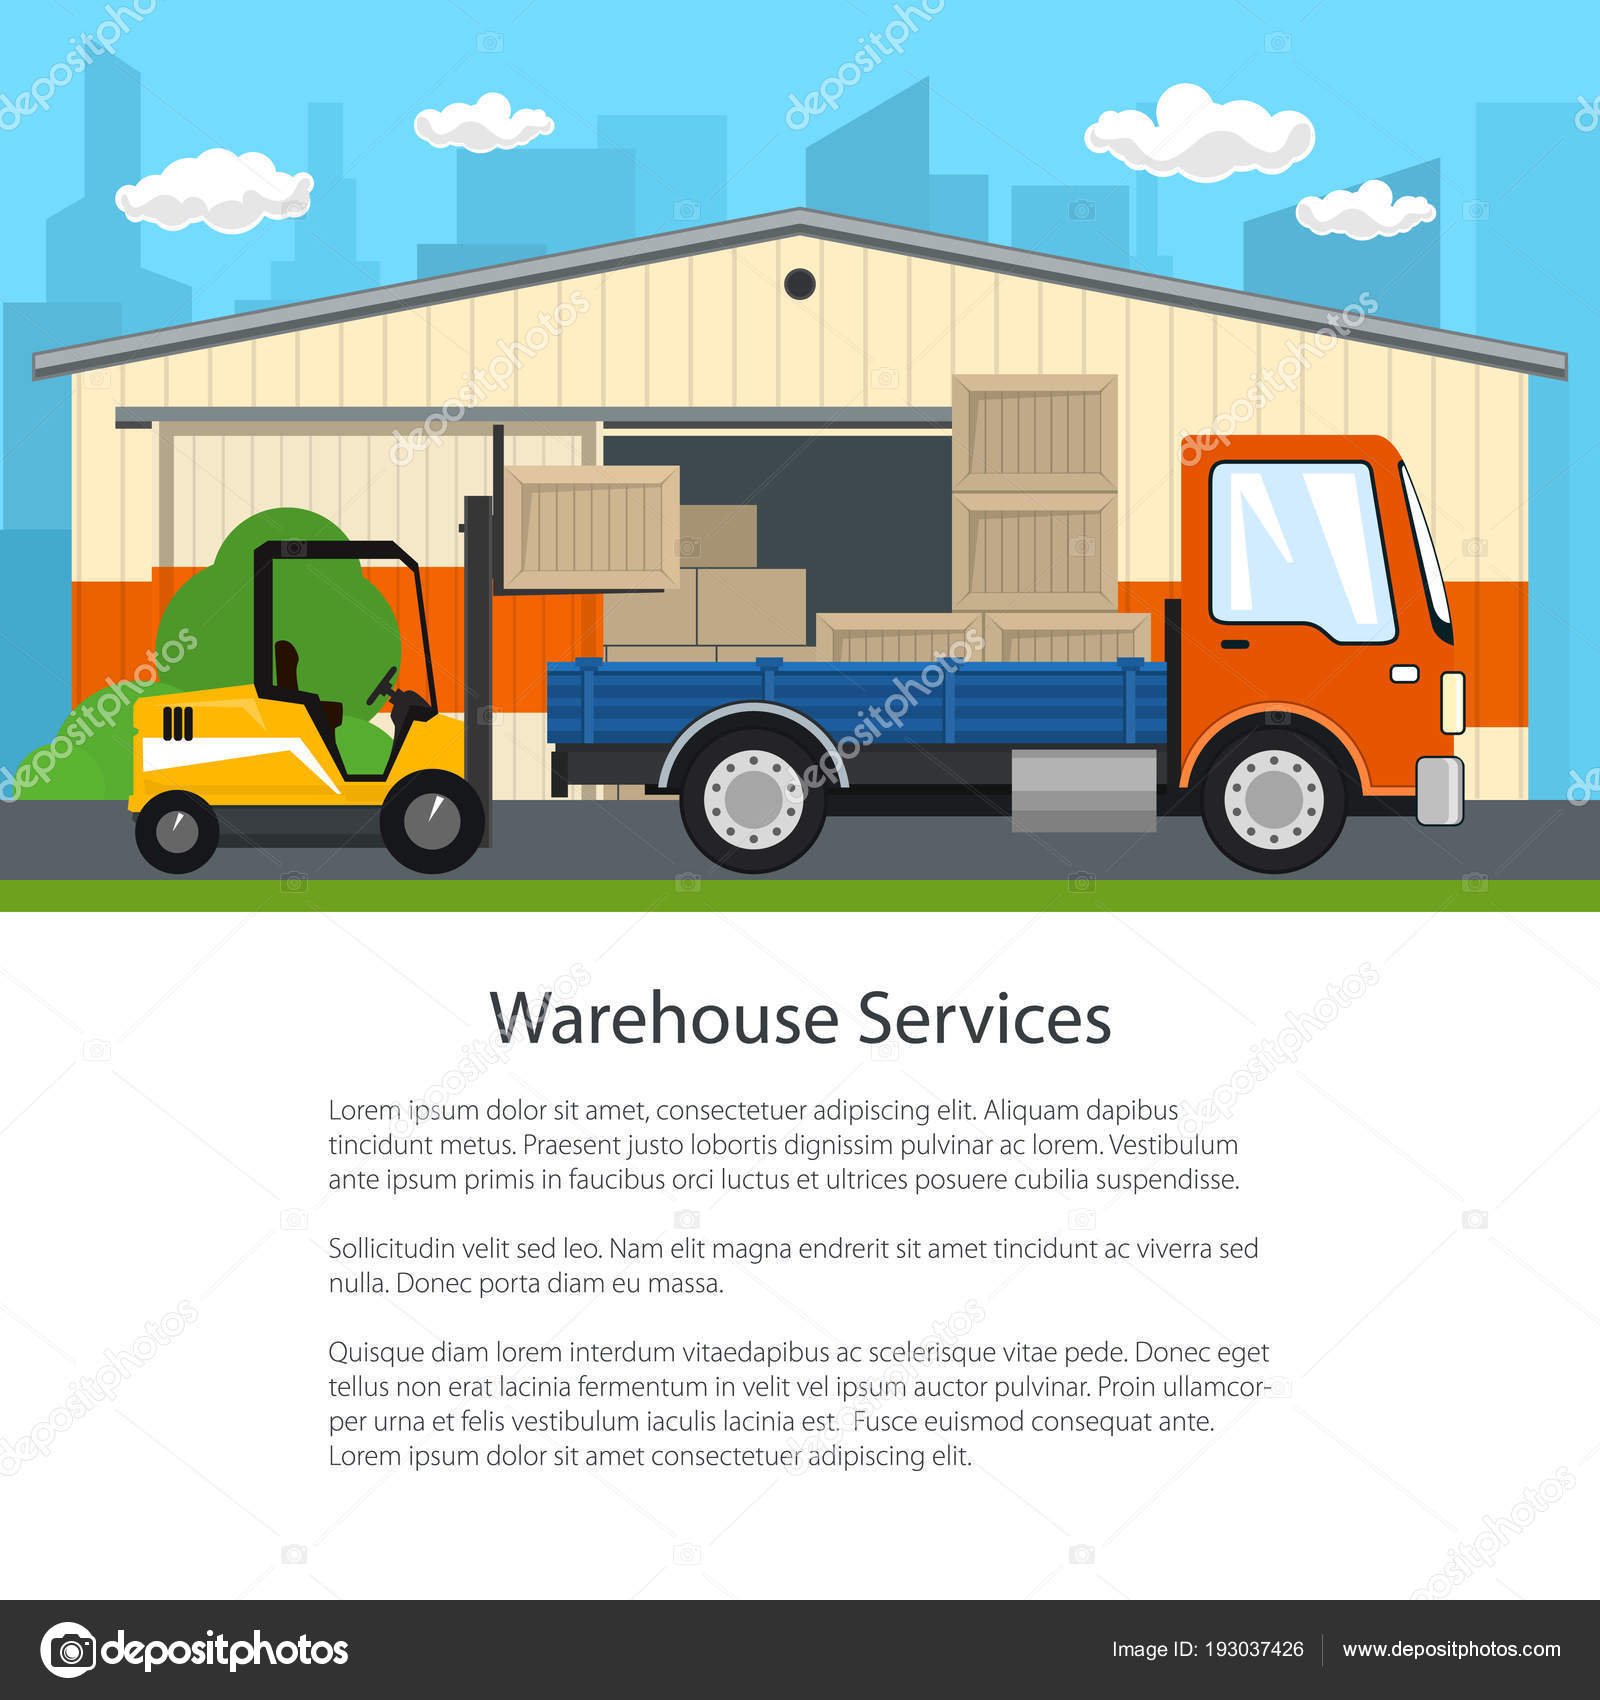 Forklift Unloads Boxes From A Truck Stock Vector C Serz72 193037426